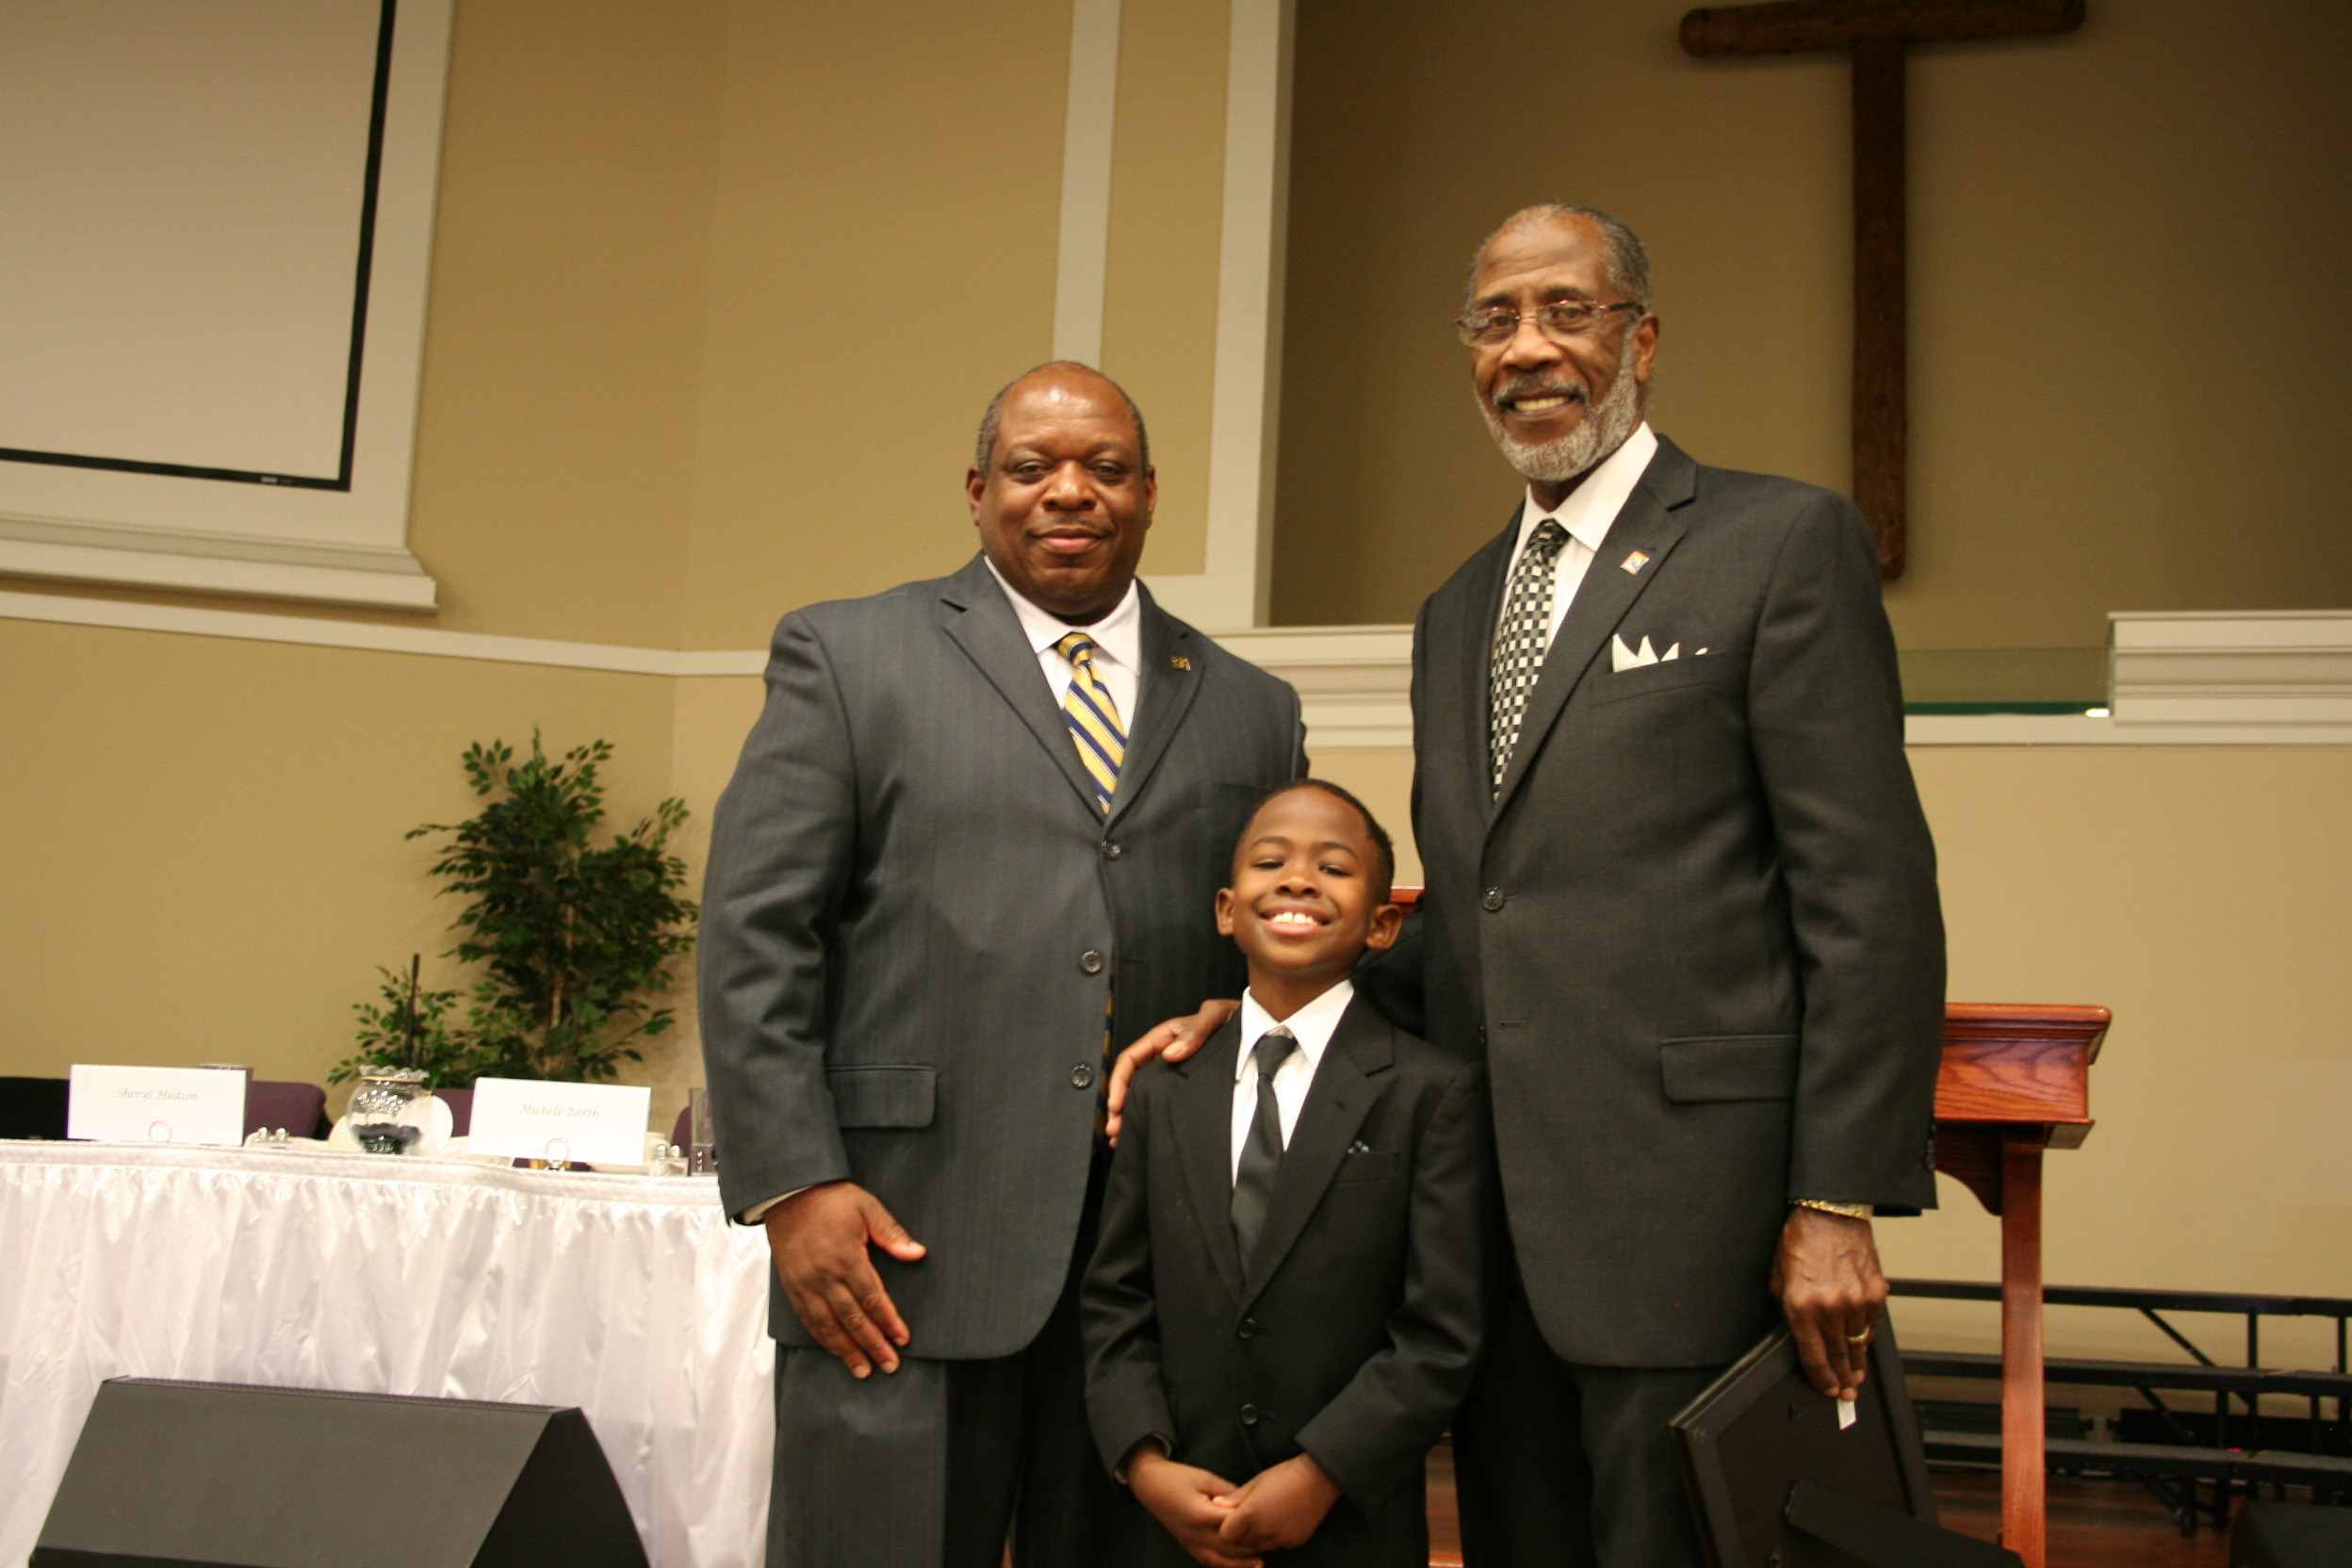 Clay Honors Legacy Of Martin Luther King Jr.